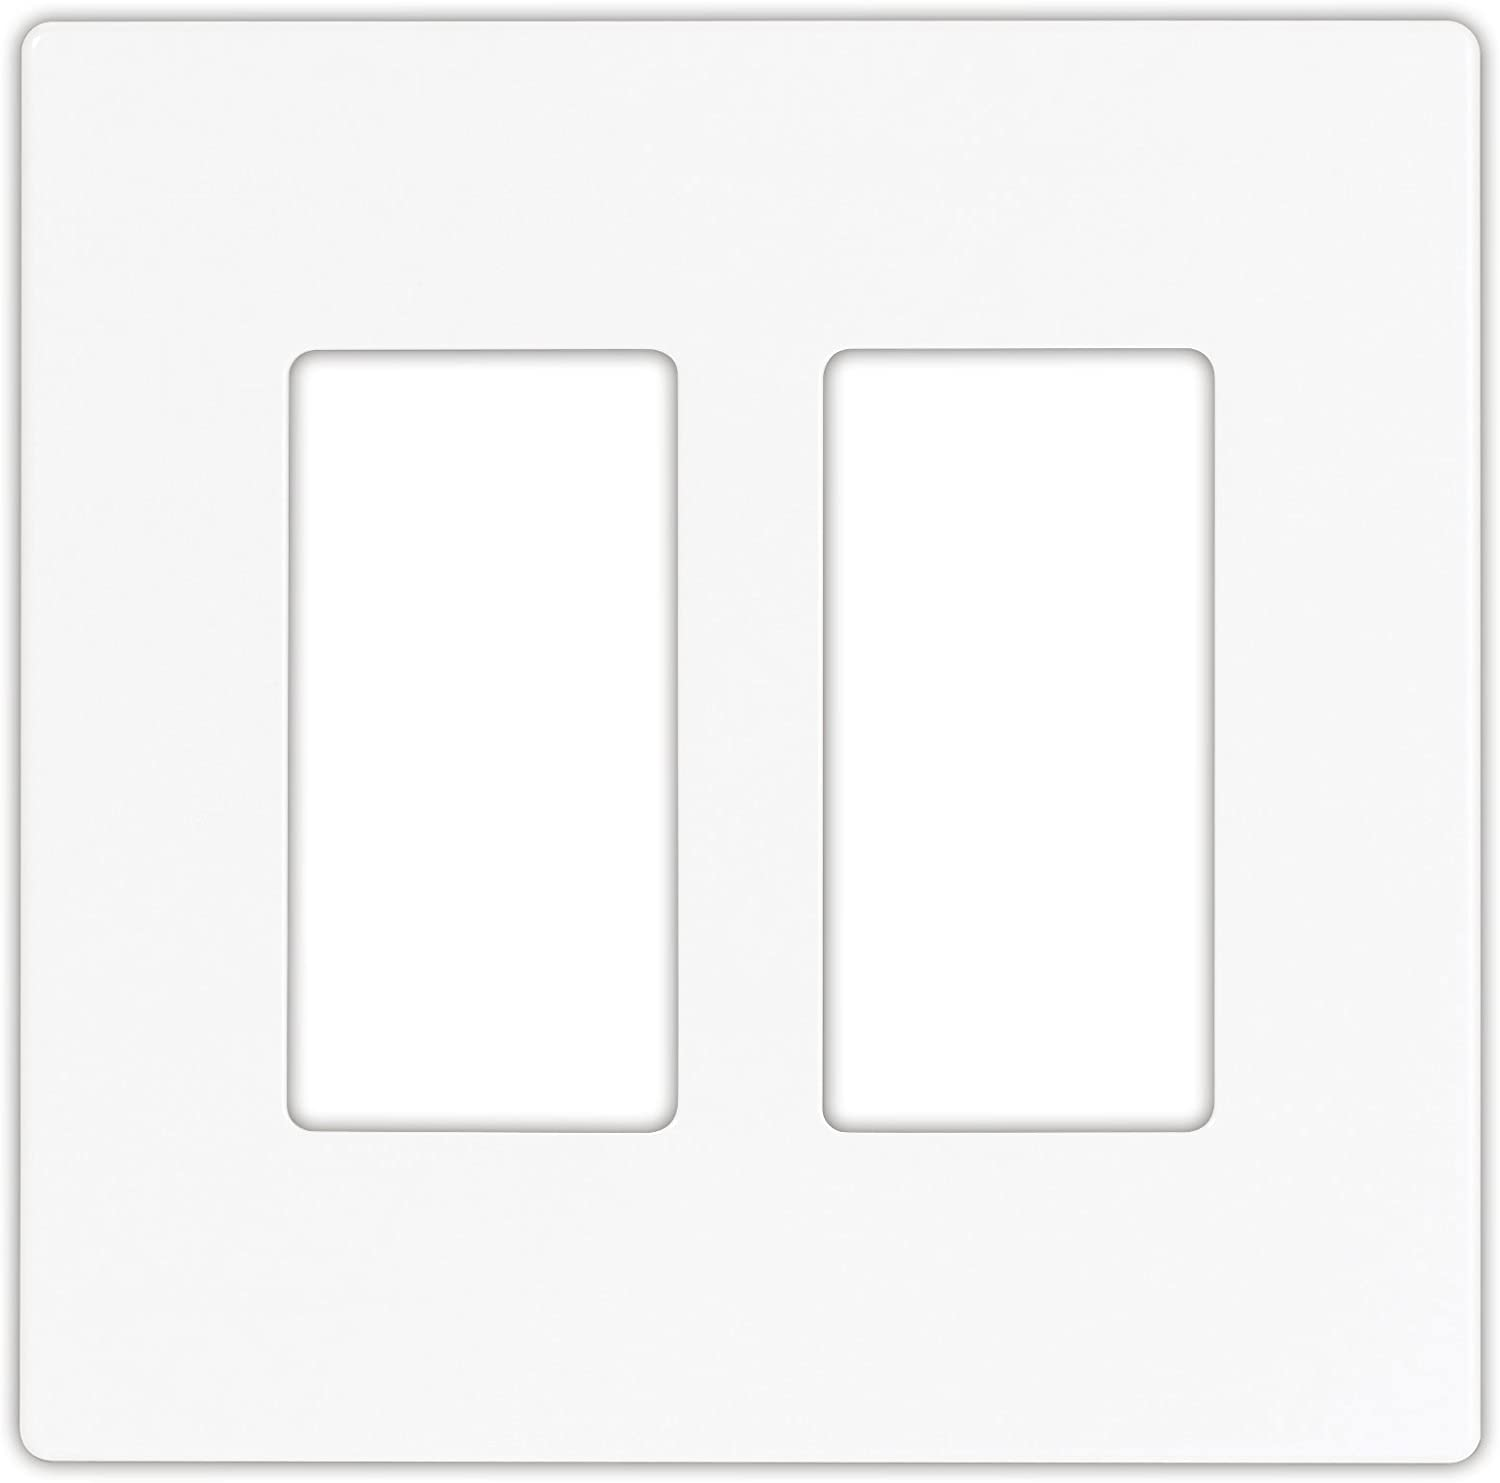 EATON PJS262W Arrow Hart Pjs262 Decorative Screw less Wall Plate, 2 Gang, 4-1/2 In L X 4.56 In W X 0.08 In T, White